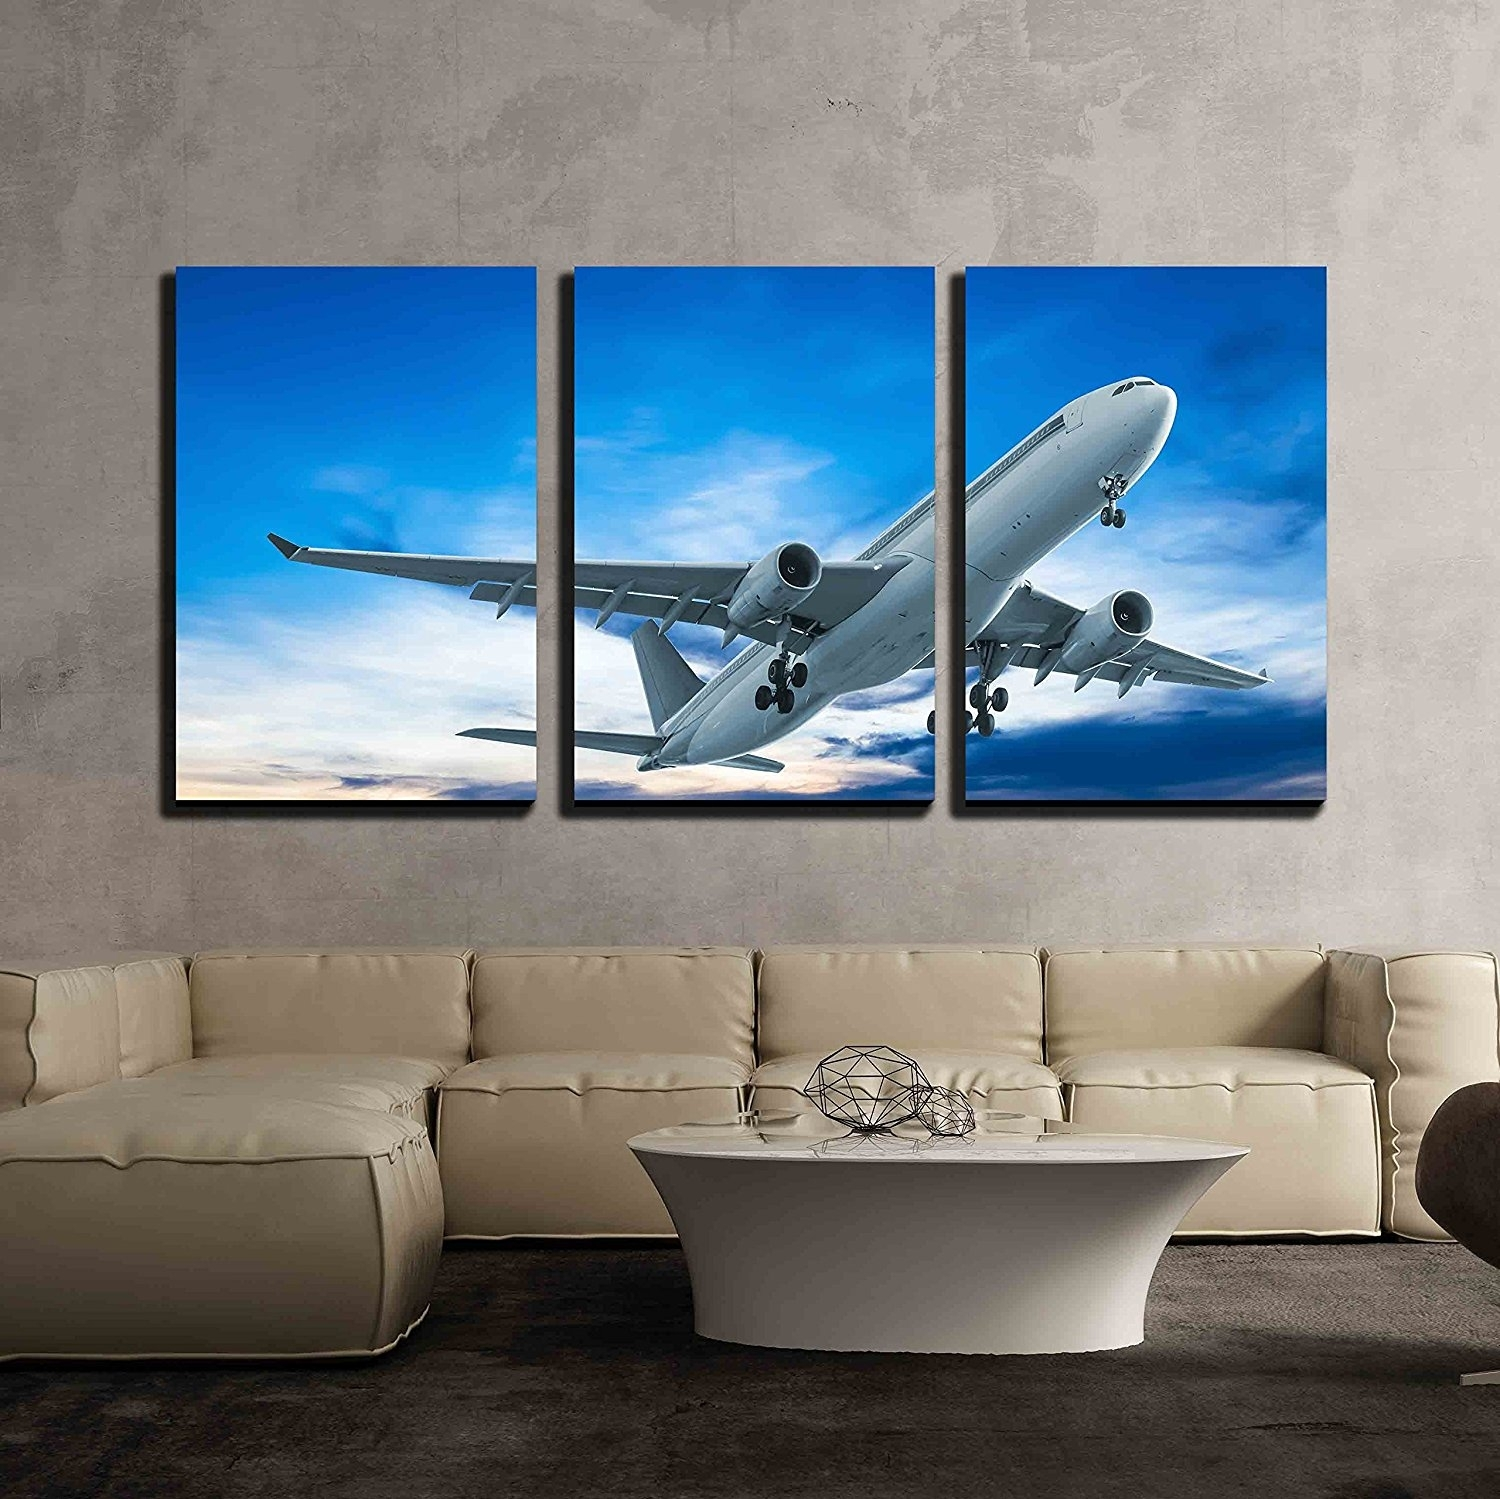 Blue Aviation Wall Art : Andrews Living Arts – Cool Themed Aviation Inside Most Recently Released Aviation Wall Art (View 12 of 20)